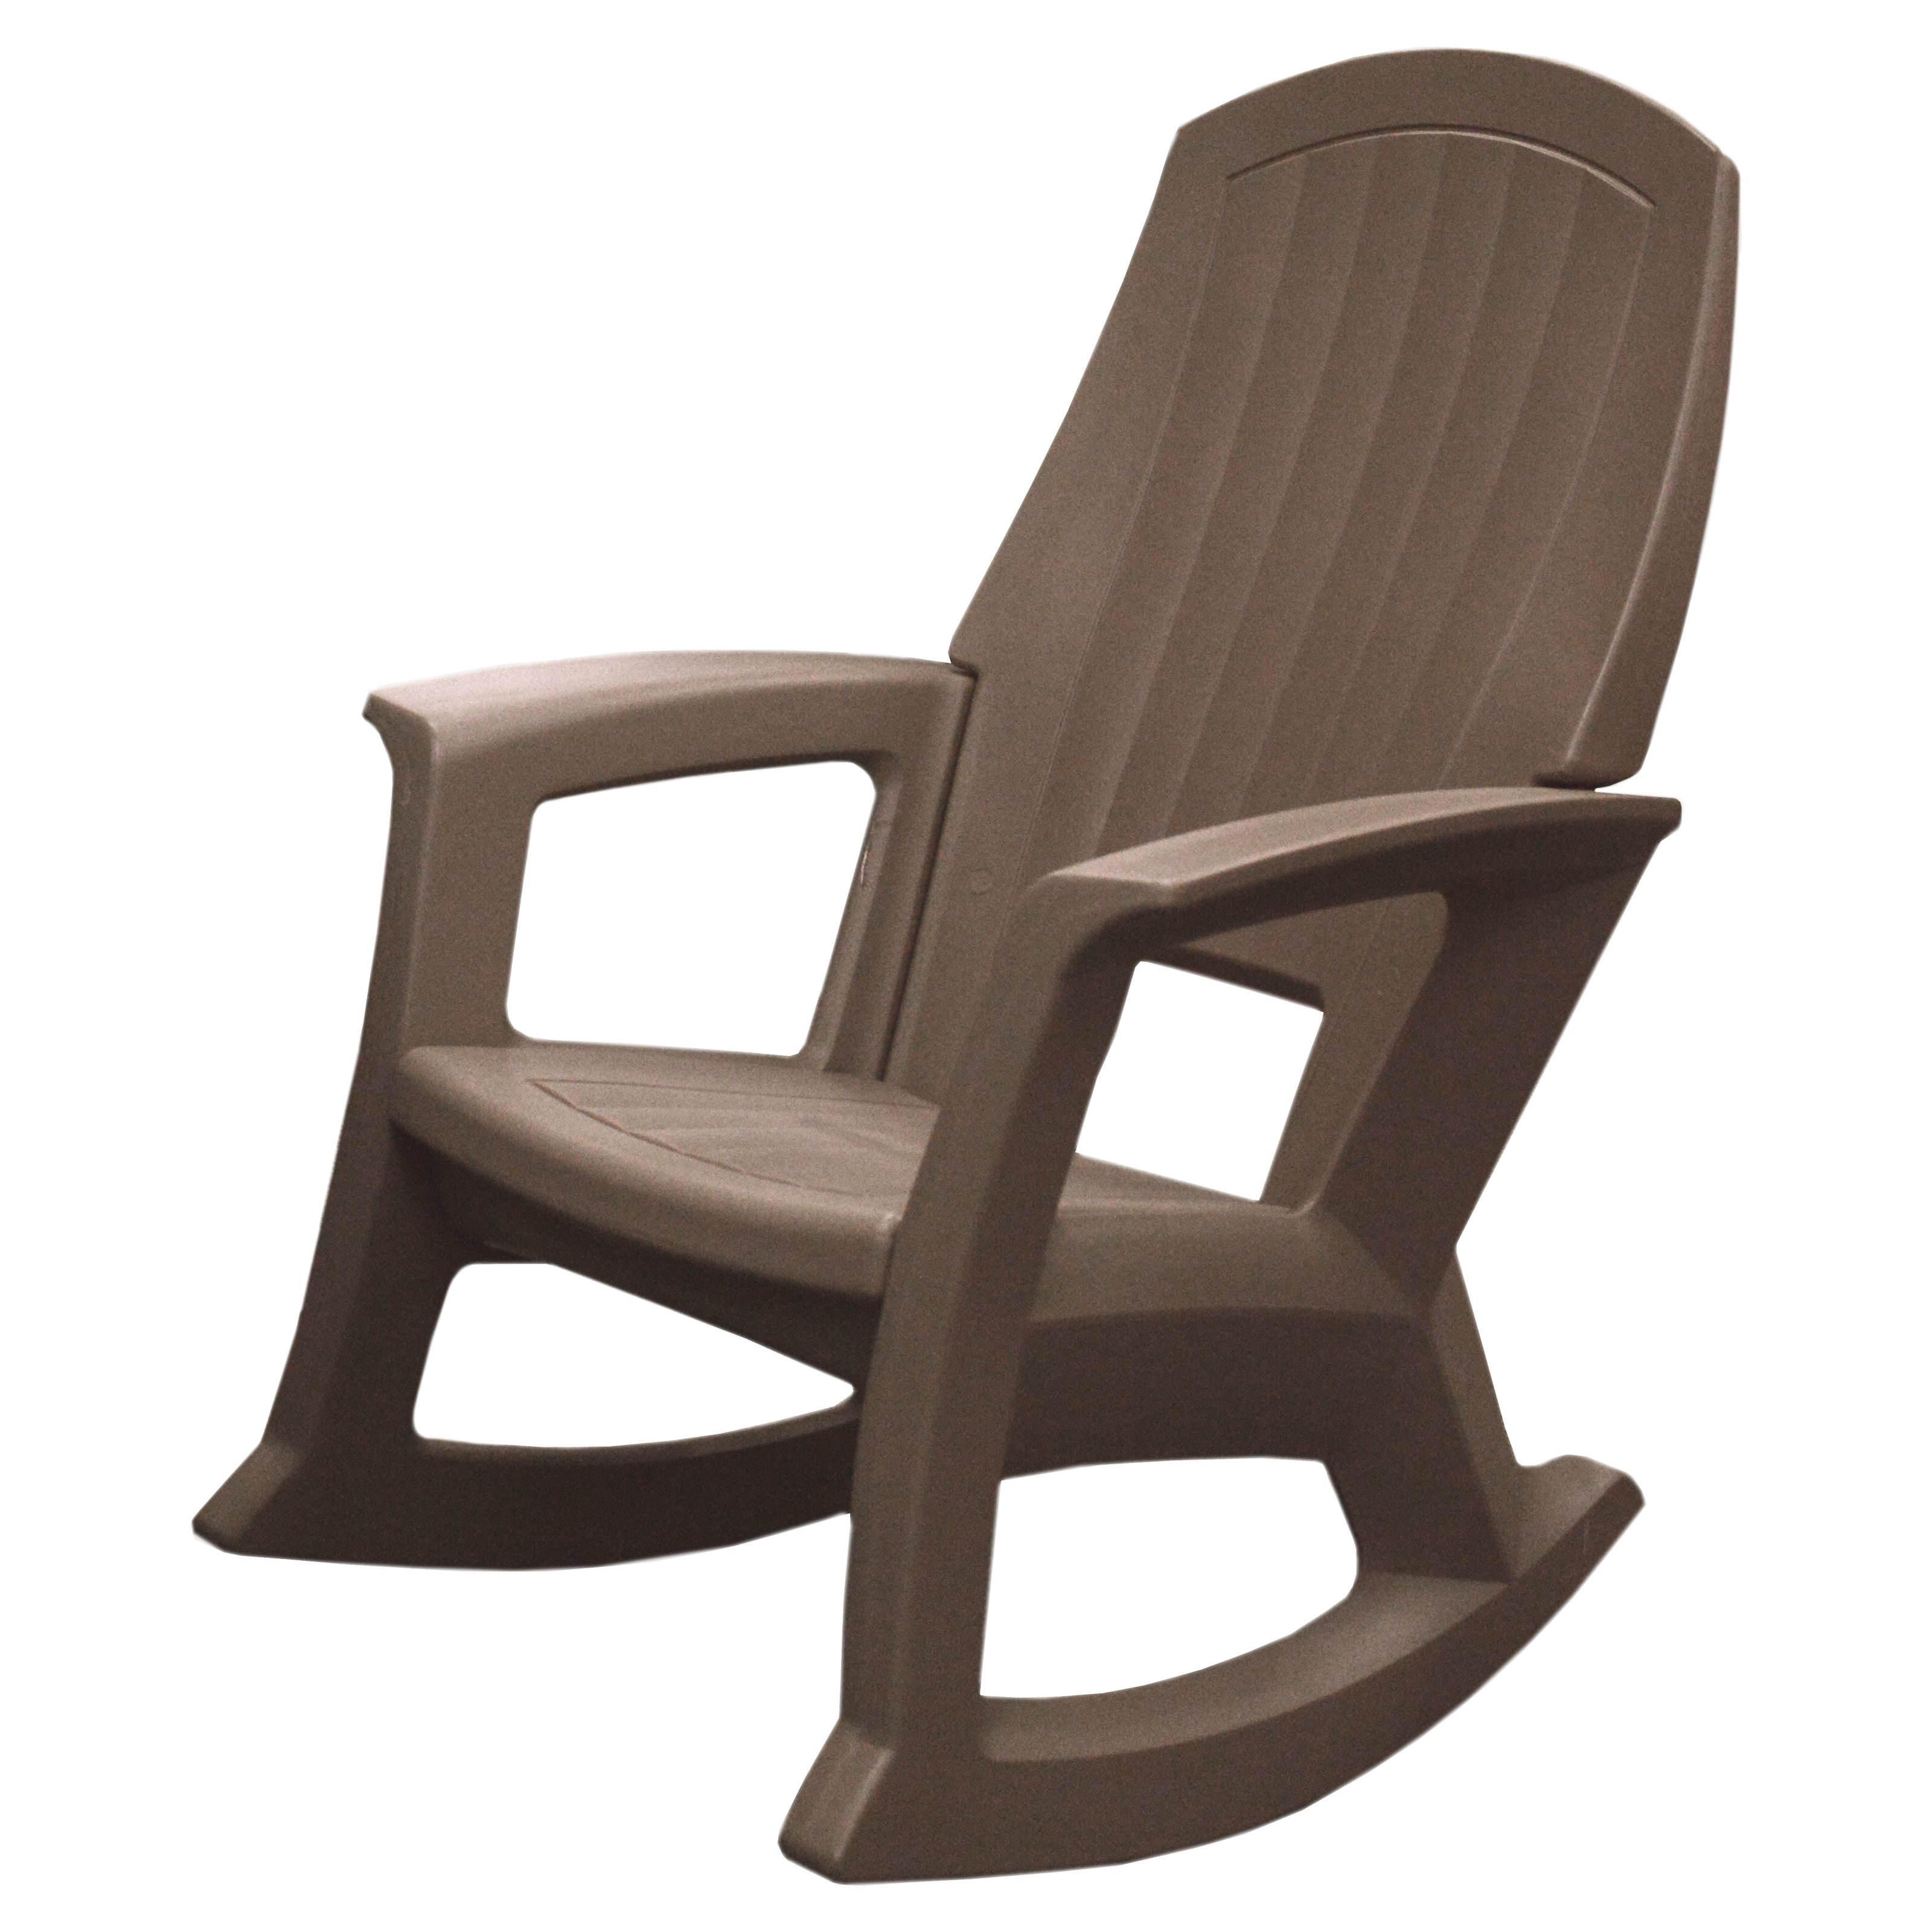 Semco-Recycled-Plastic-Rocking-Chair  sc 1 st  eBay & Semco Recycled Plastic Rocking Chair | eBay